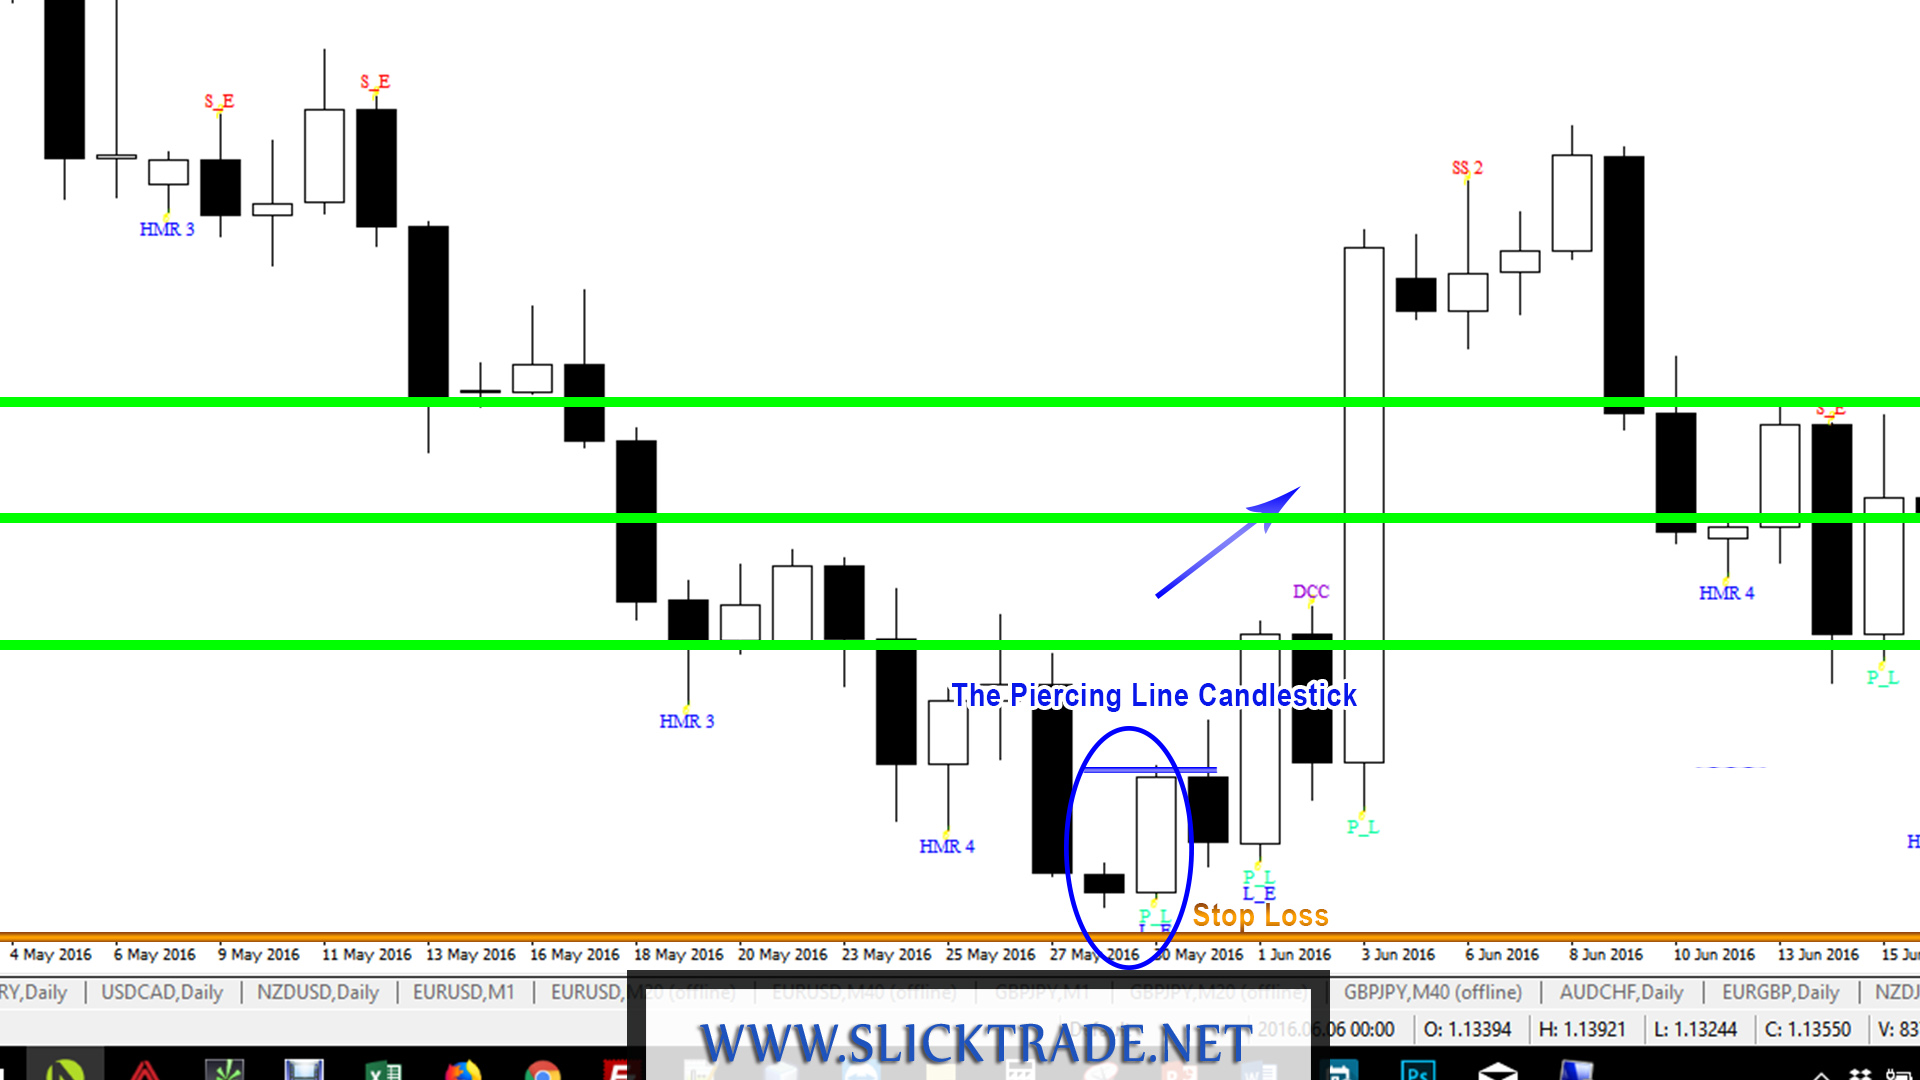 Candlestick Patterns - Piercing Line 2